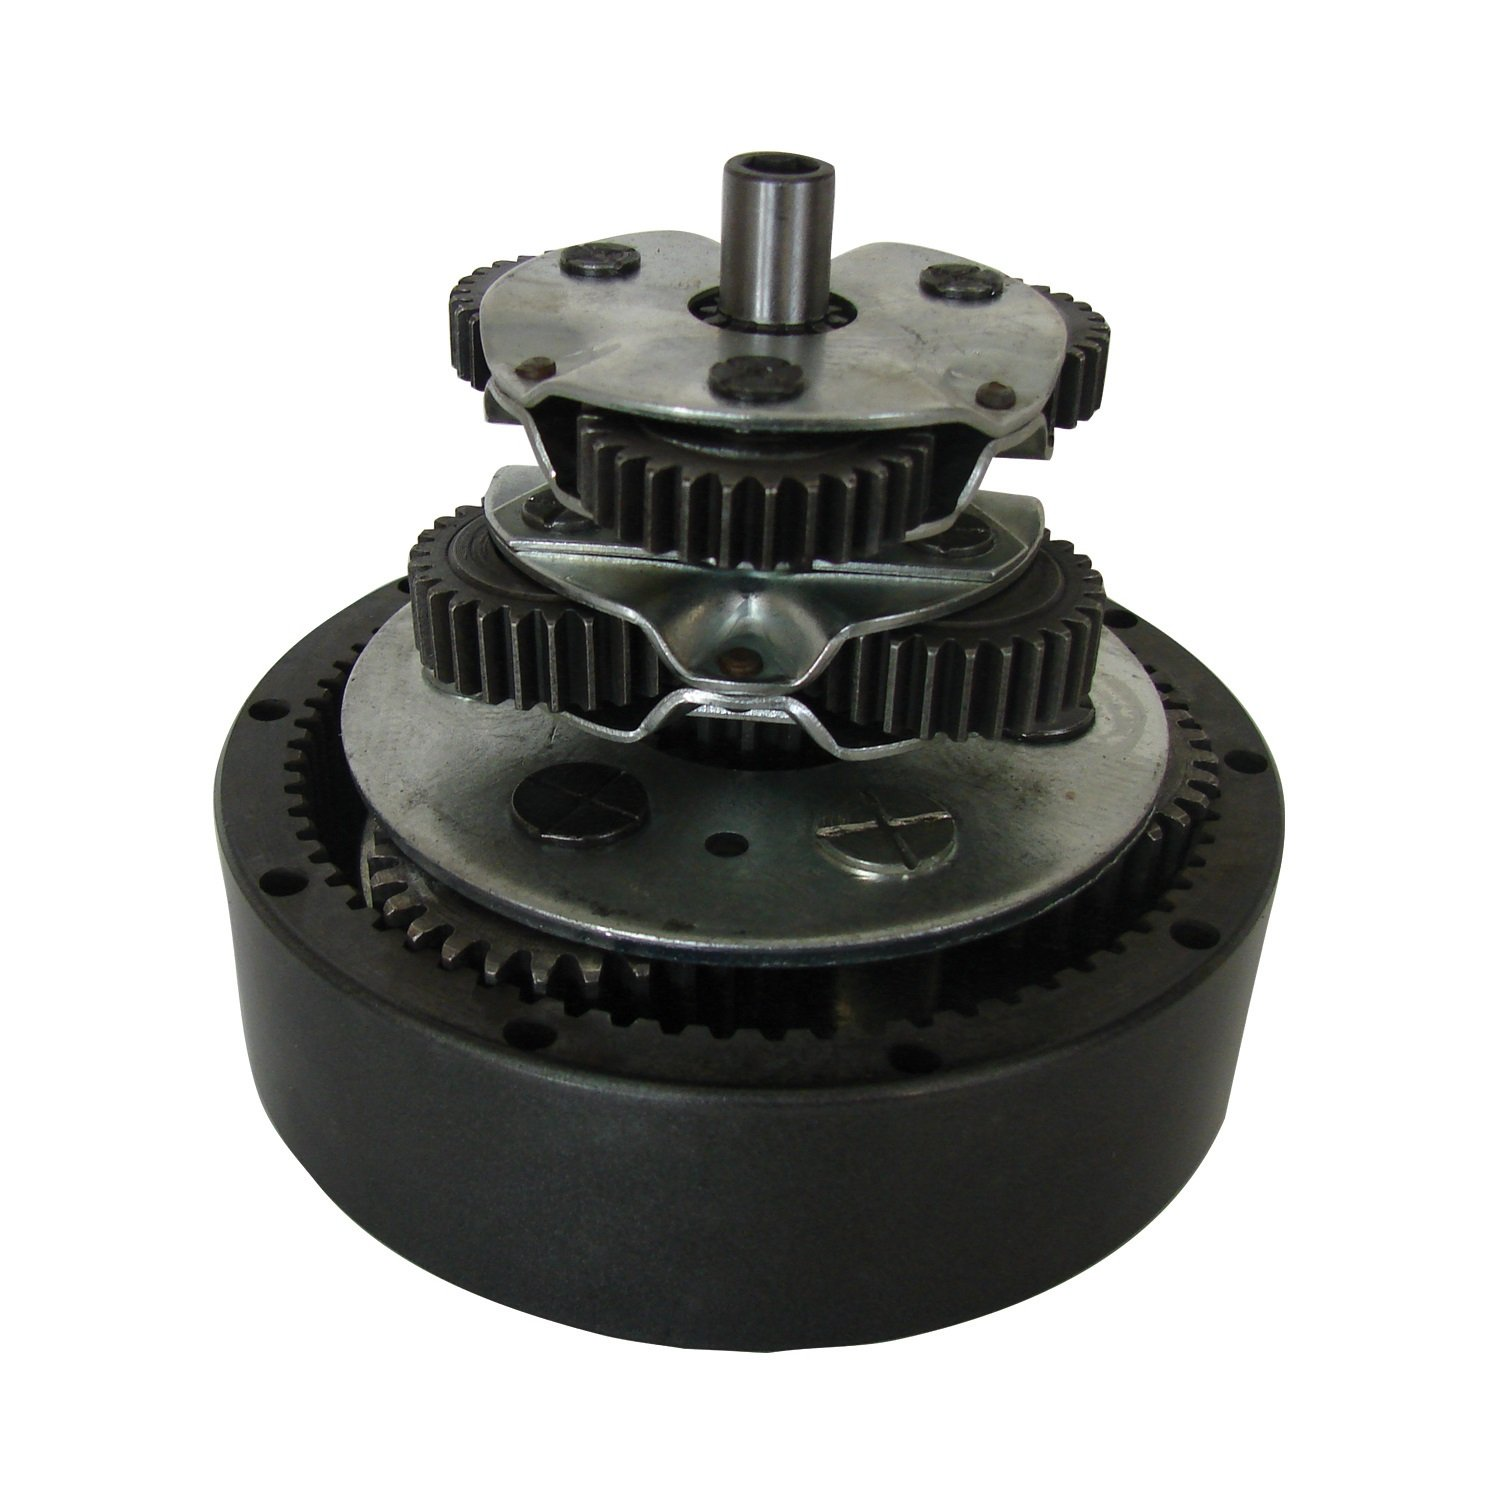 P Series Winch Planetary Gear Set Competition Specialities CSI P12022